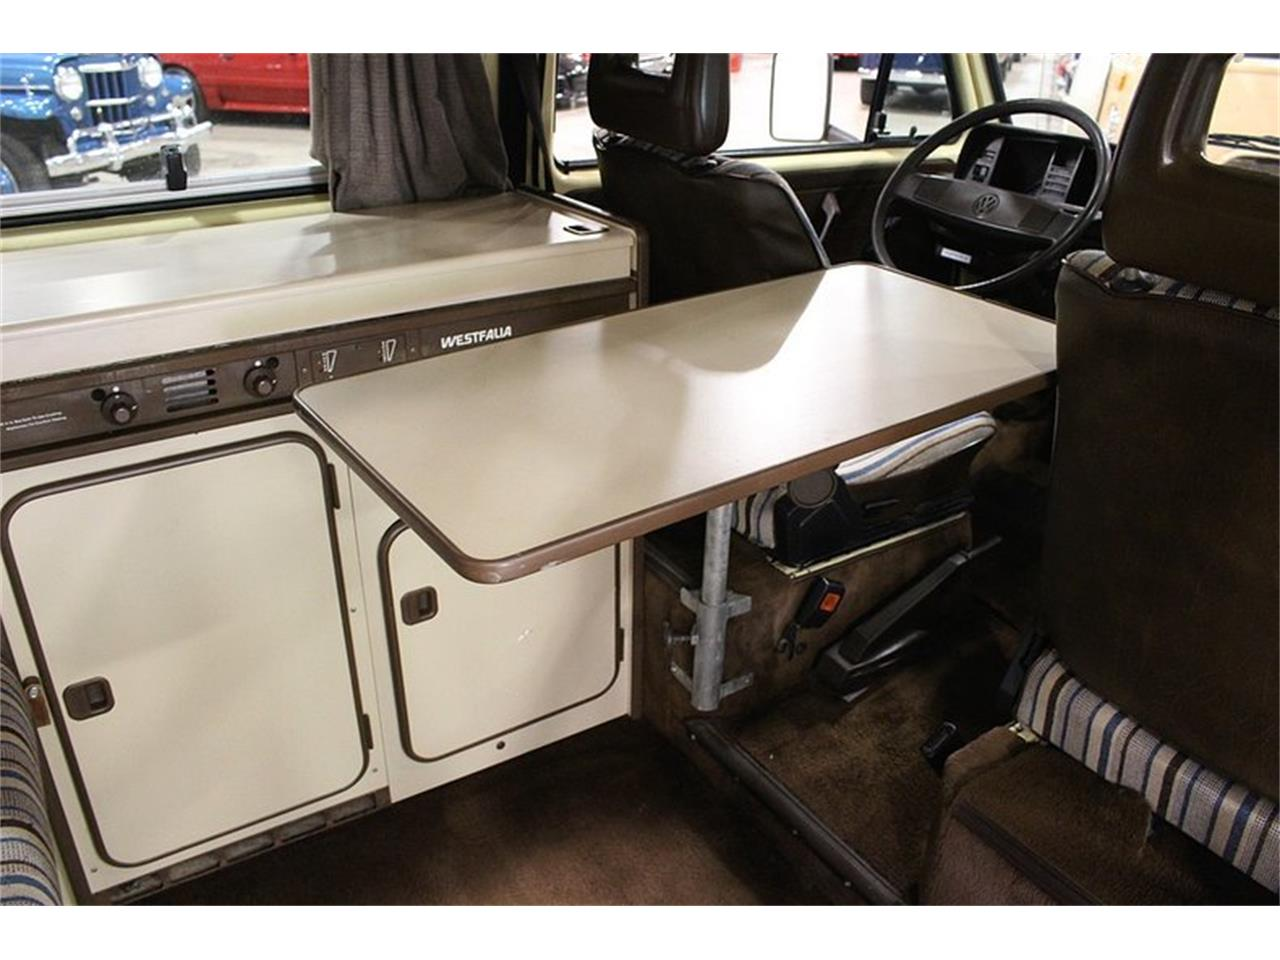 Large Picture of '83 Westfalia Camper located in Kentwood Michigan - $15,900.00 - OIFP